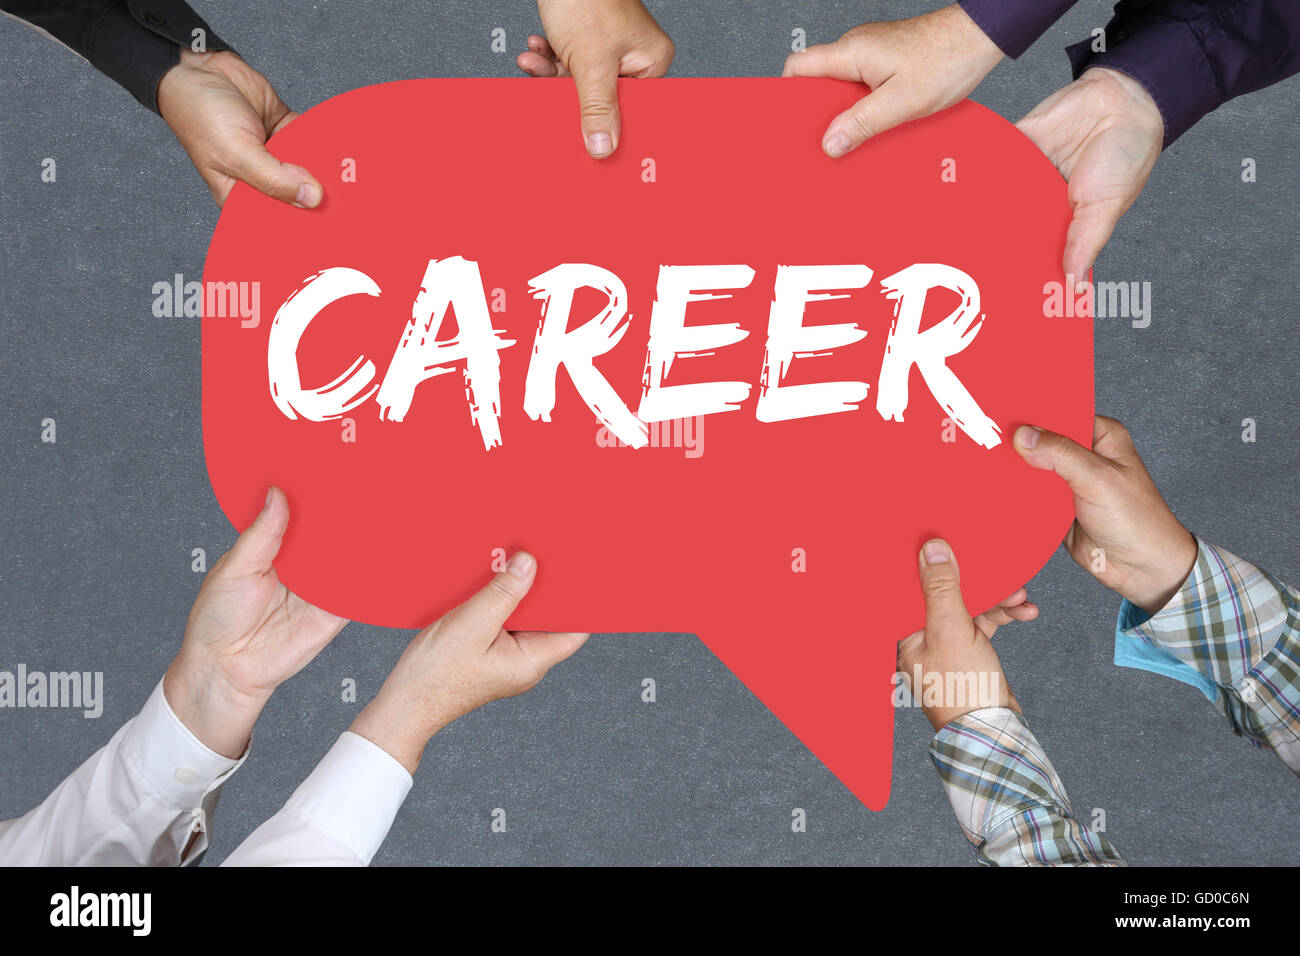 Group of people holding with hands the word career opportunities goals success and development business concept - Stock Image